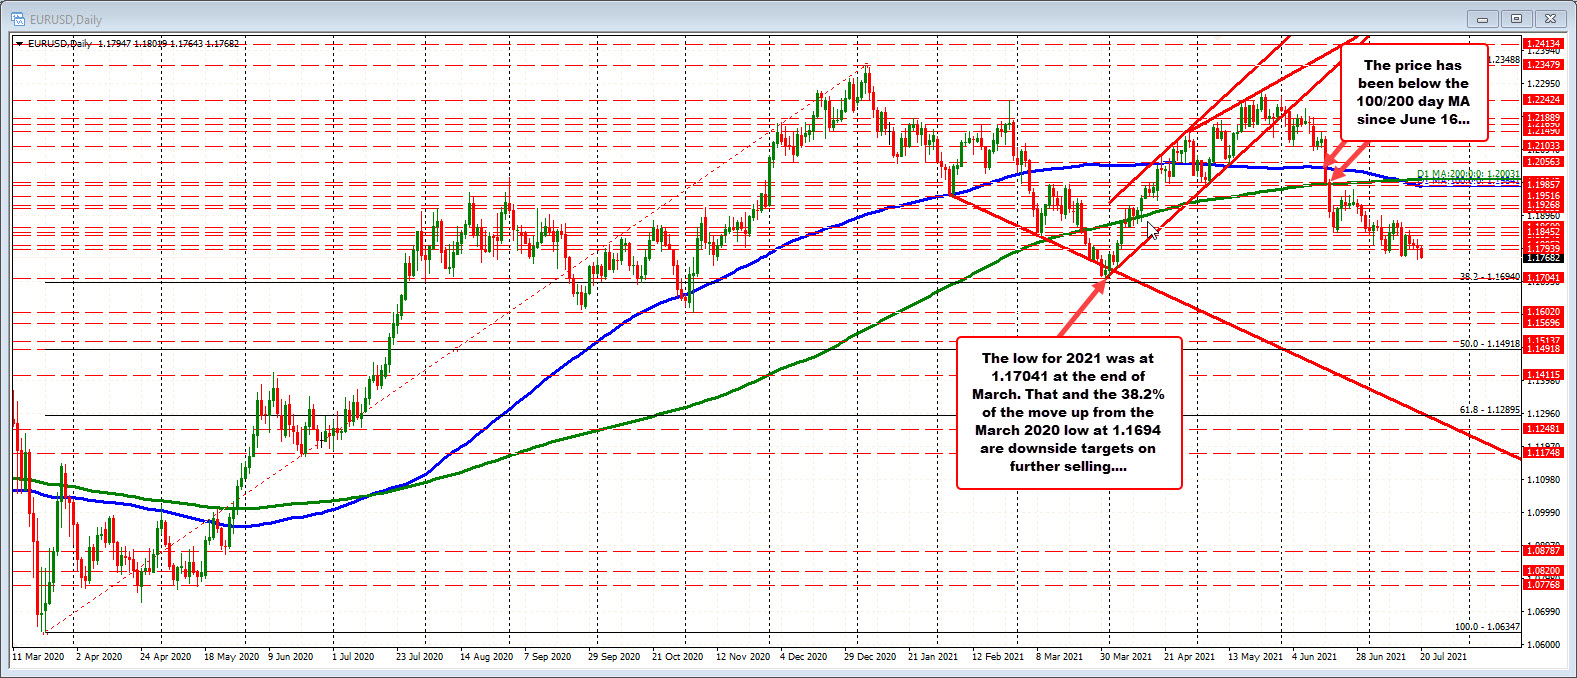 The EURUSD on the daily chart.